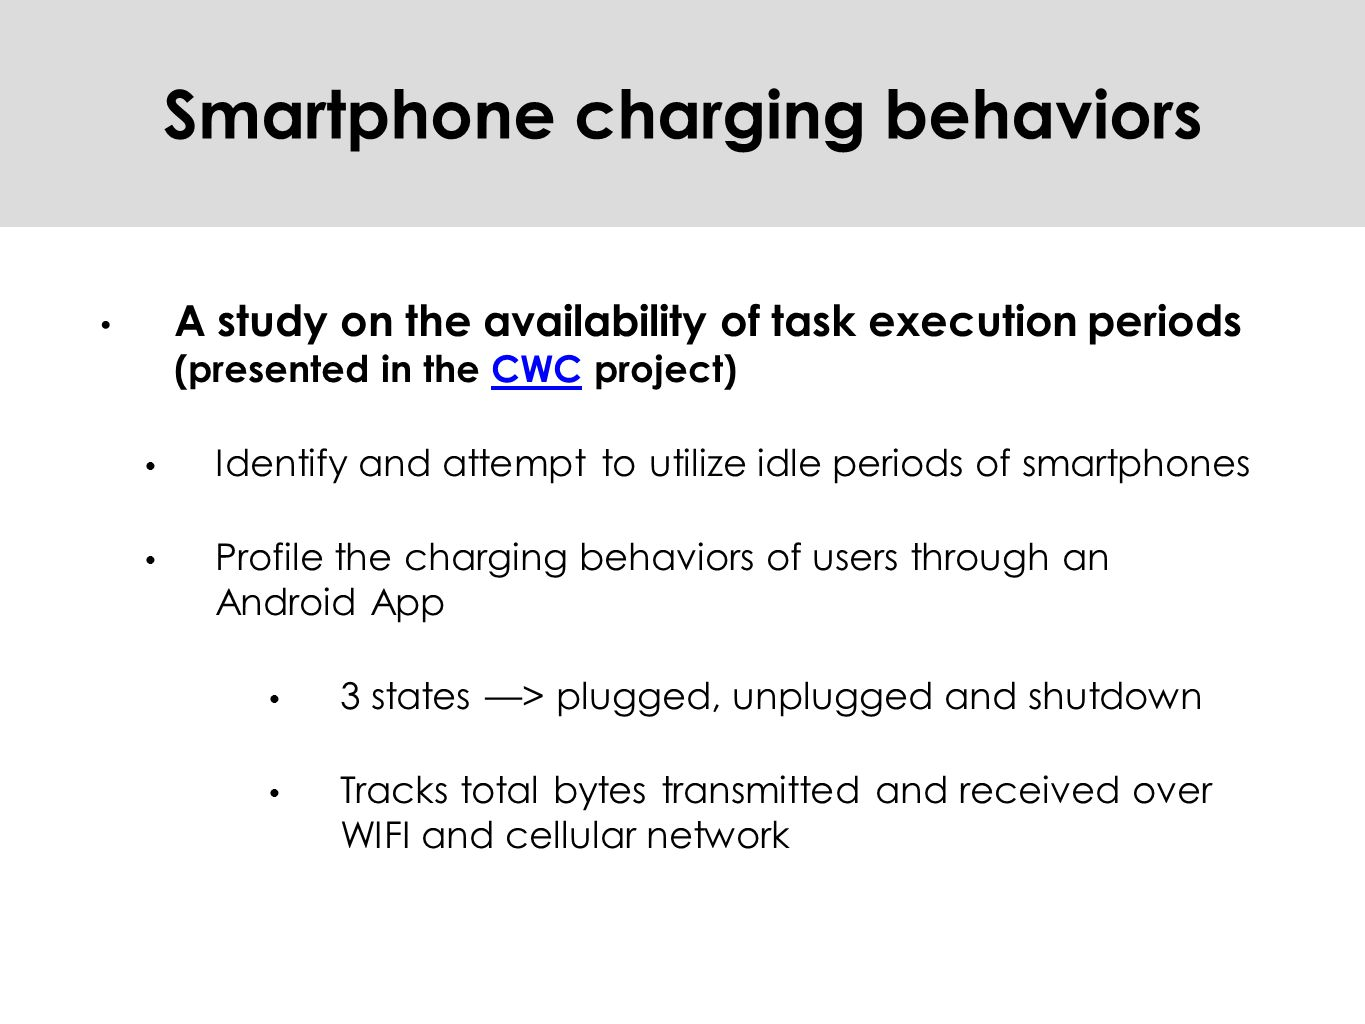 Smartphone charging behaviors A study on the availability of task execution periods (presented in the CWC project)CWC Identify and attempt to utilize idle periods of smartphones Profile the charging behaviors of users through an Android App 3 states —> plugged, unplugged and shutdown Tracks total bytes transmitted and received over WIFI and cellular network